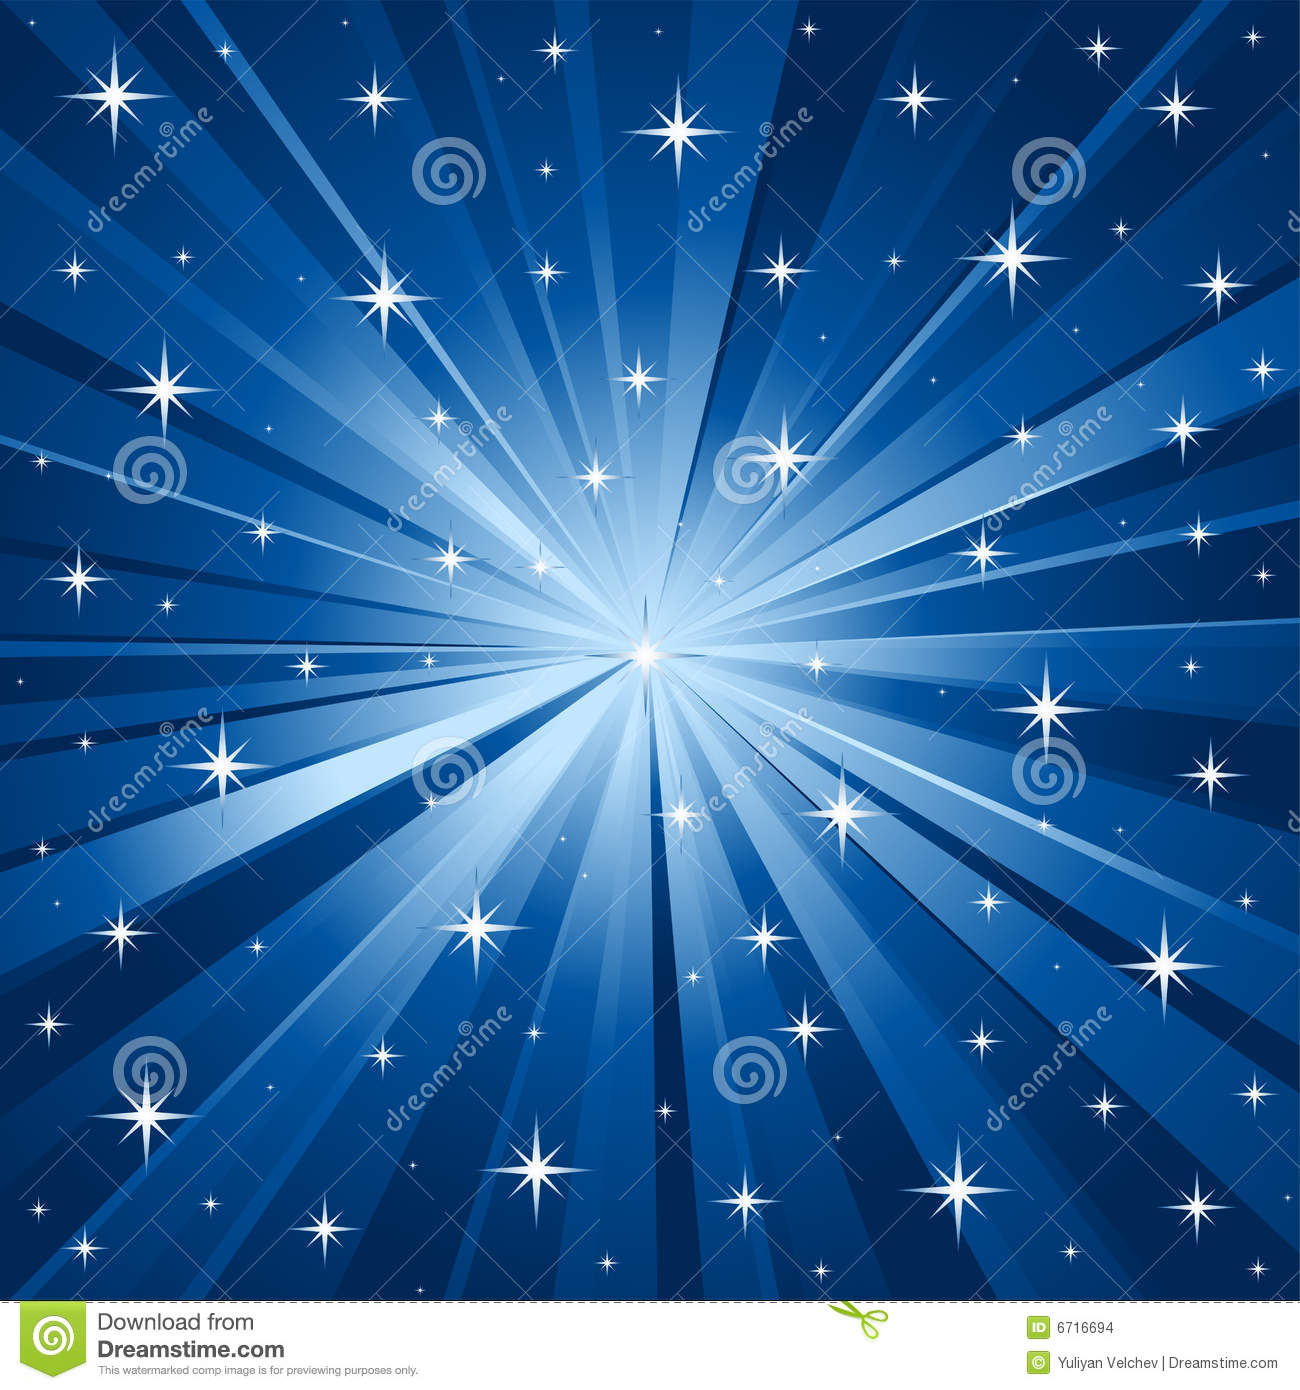 blue star background vector - photo #17